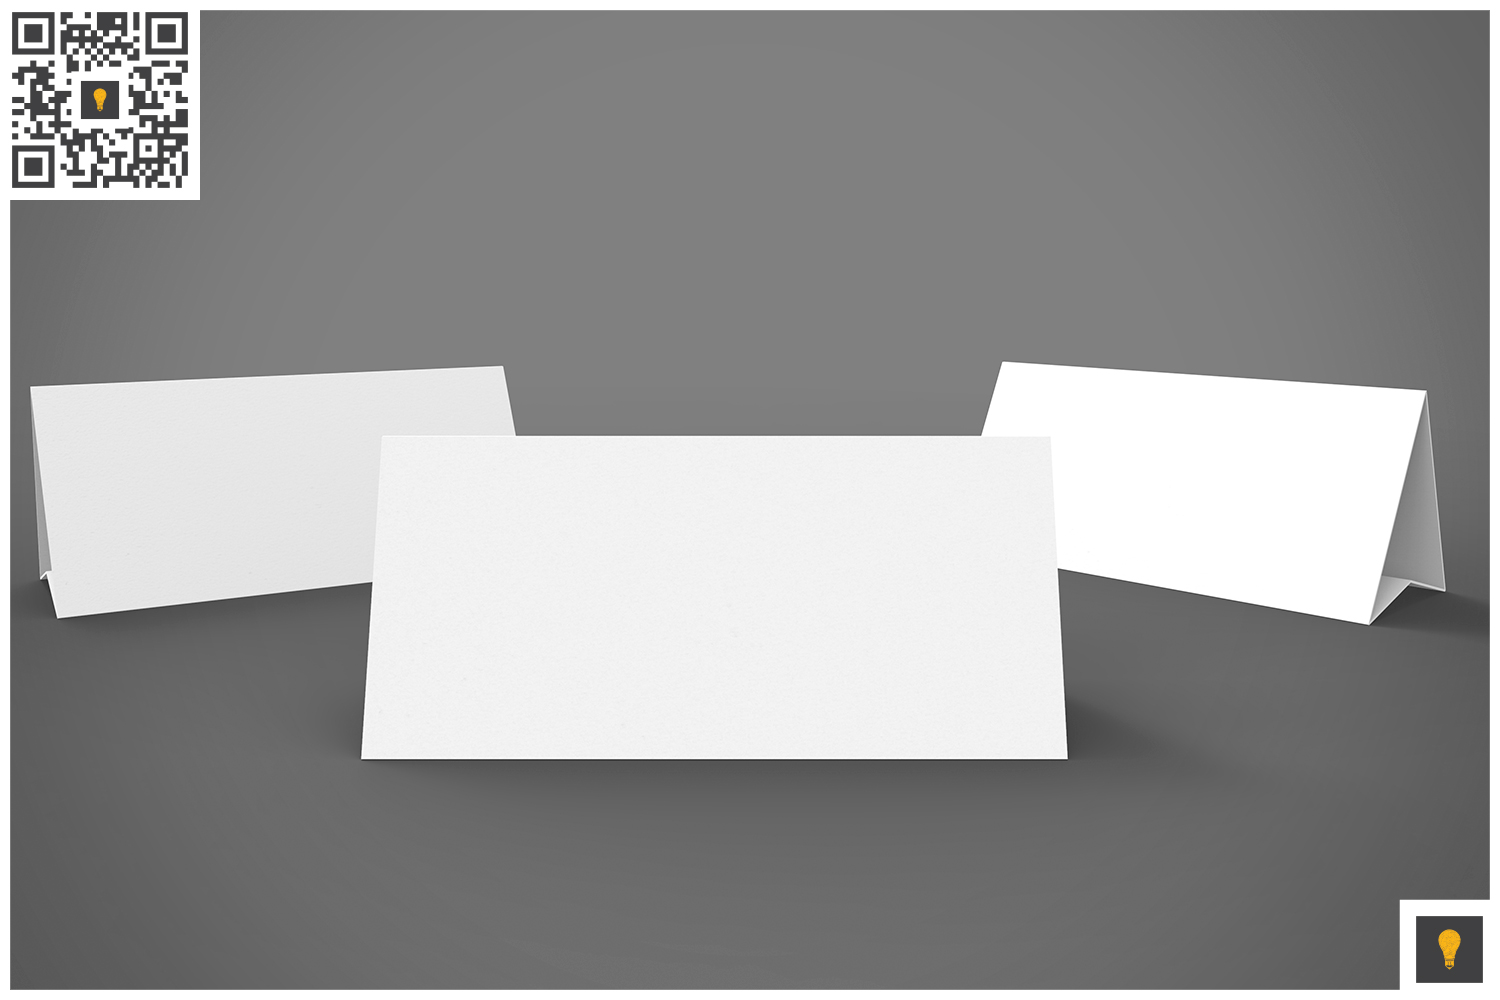 Table Tent 3D Render example image 3